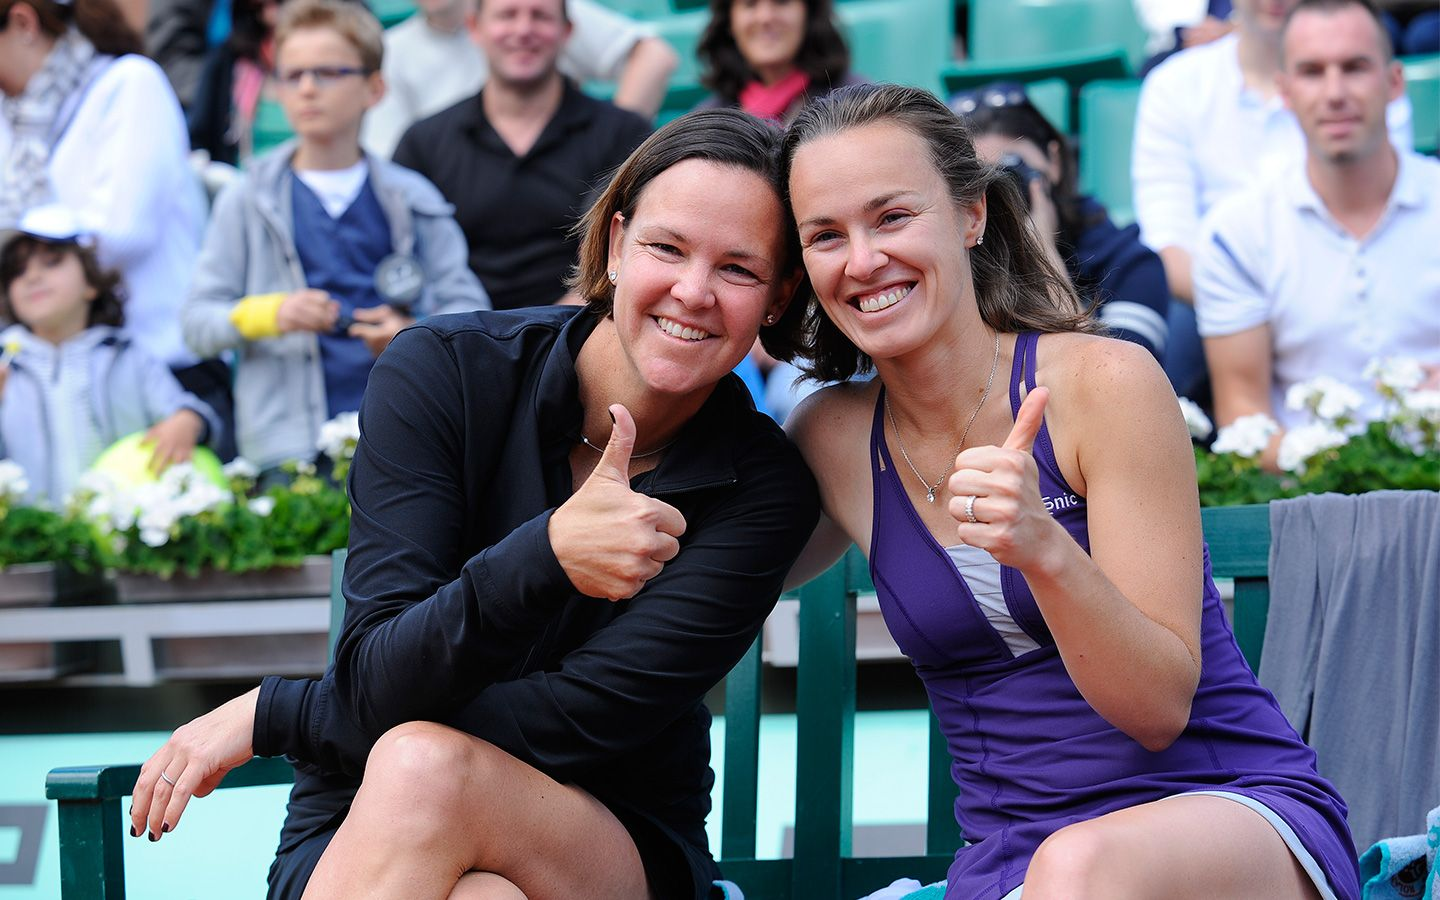 Lindsay Davenport and Martina Hingis are all smiles after taking